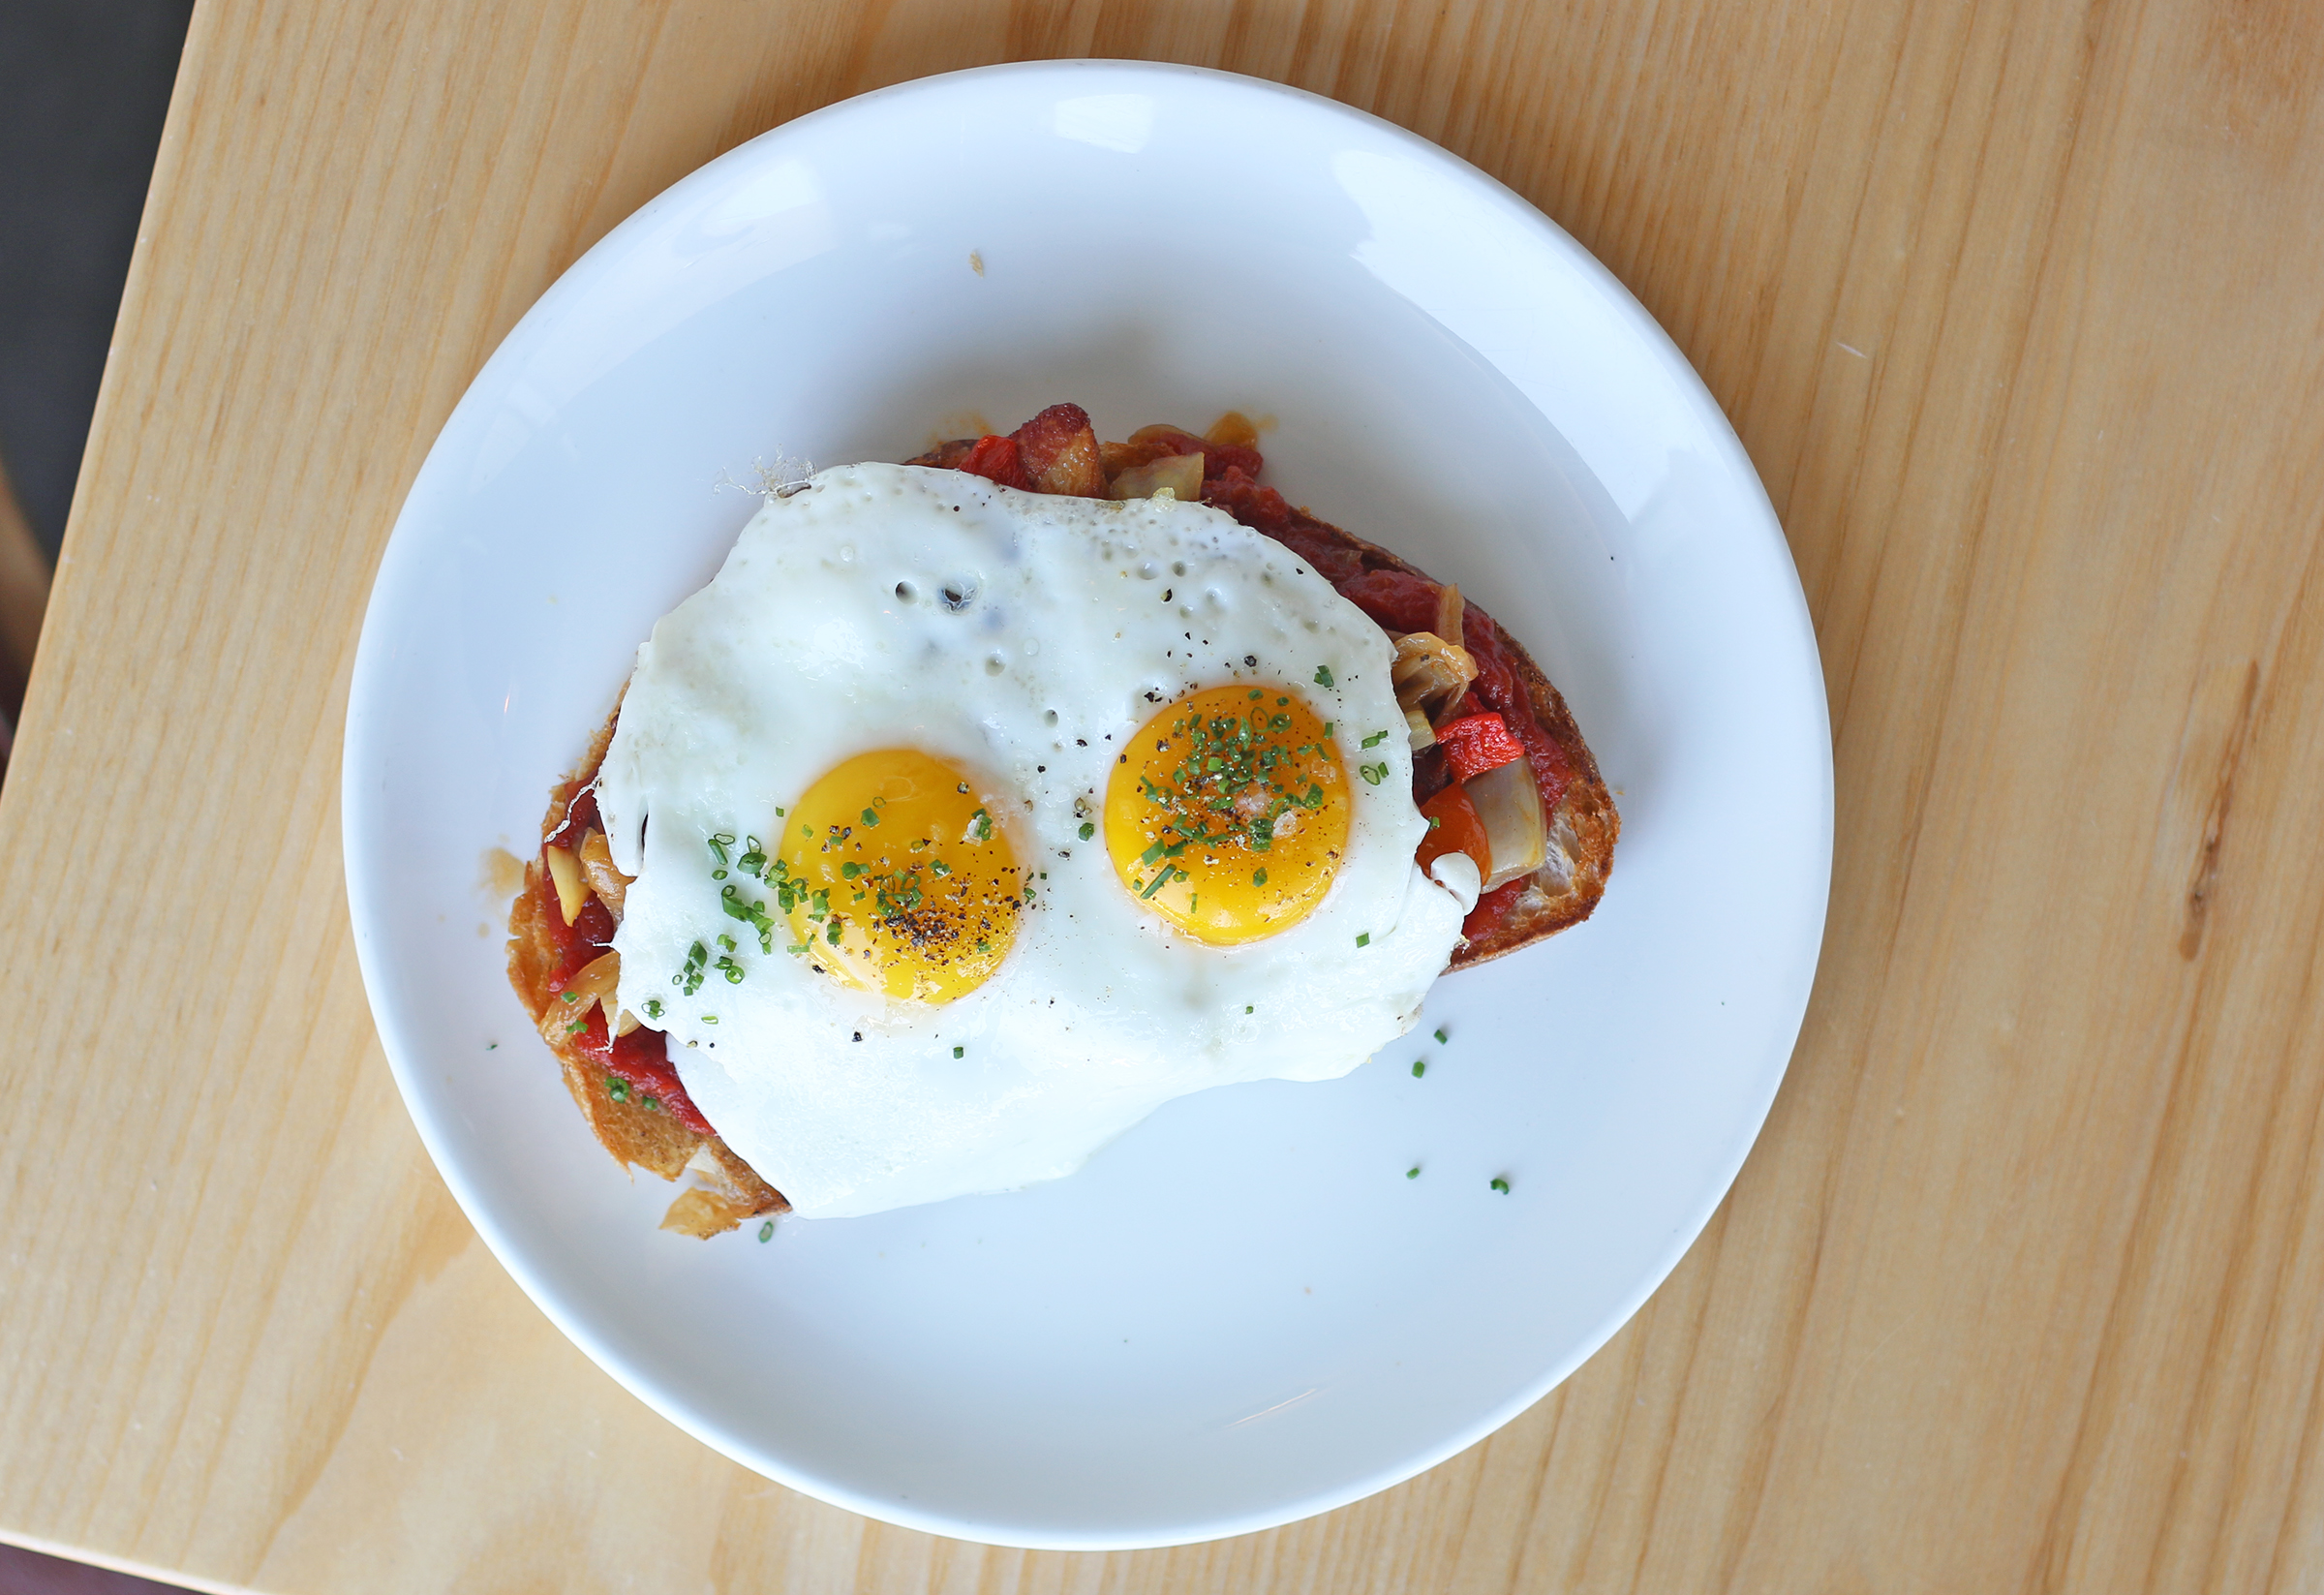 PORK BELLY TOAST: sunny side up eggs, tomato marmalade, piquillo peppers, cherry tomatoes, confit fennel